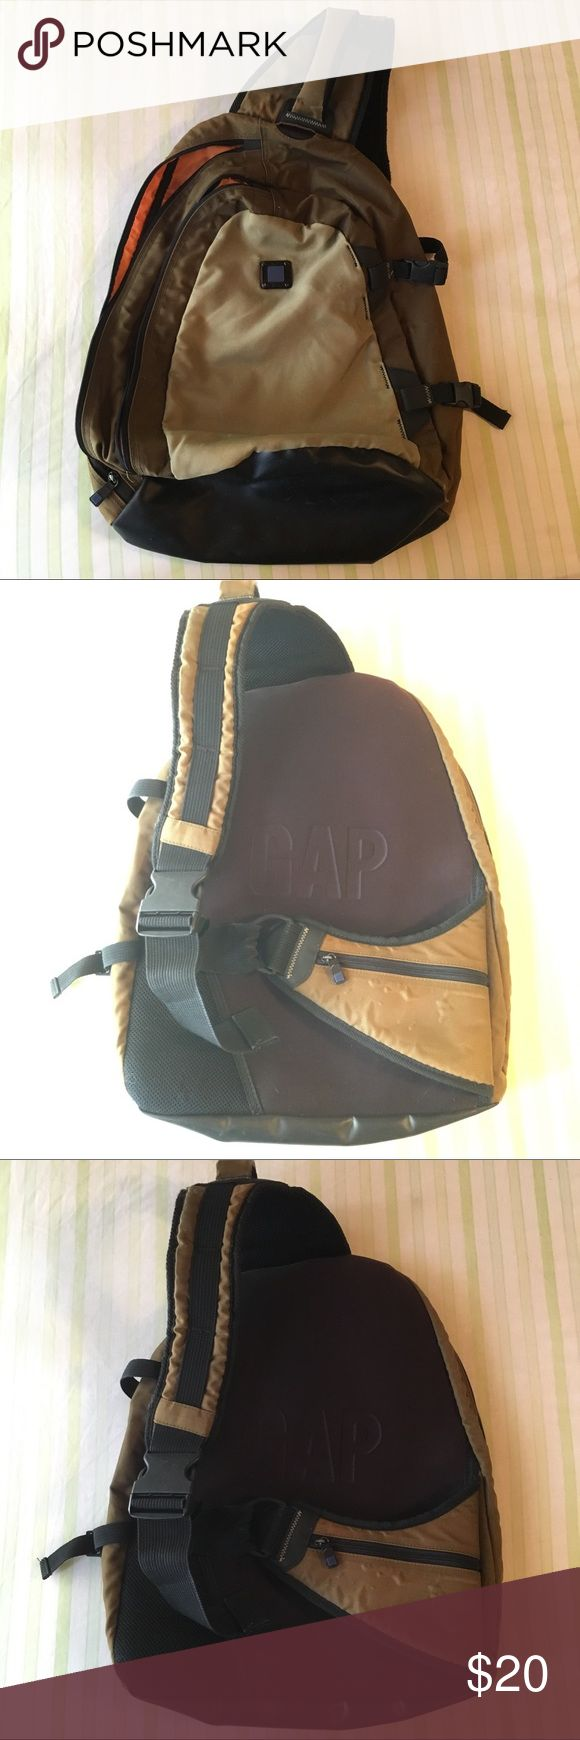 One shoulder backpack/ satchel GAP brand one-shoulder backpack/ satchel in masculine colors. Tan, brown/green with hunter orange interior. Zippers work and there is no compromising damage, but there are signs of wear on hardware & bottom, also a few pen marks inside that I have not attempted to wipe off. Will ship wiped and sanitized. Measurements and wear marks in photos. Several adjustable clasps. MAKE AN OFFER! Tags: cross body sling GAP Bags Backpacks